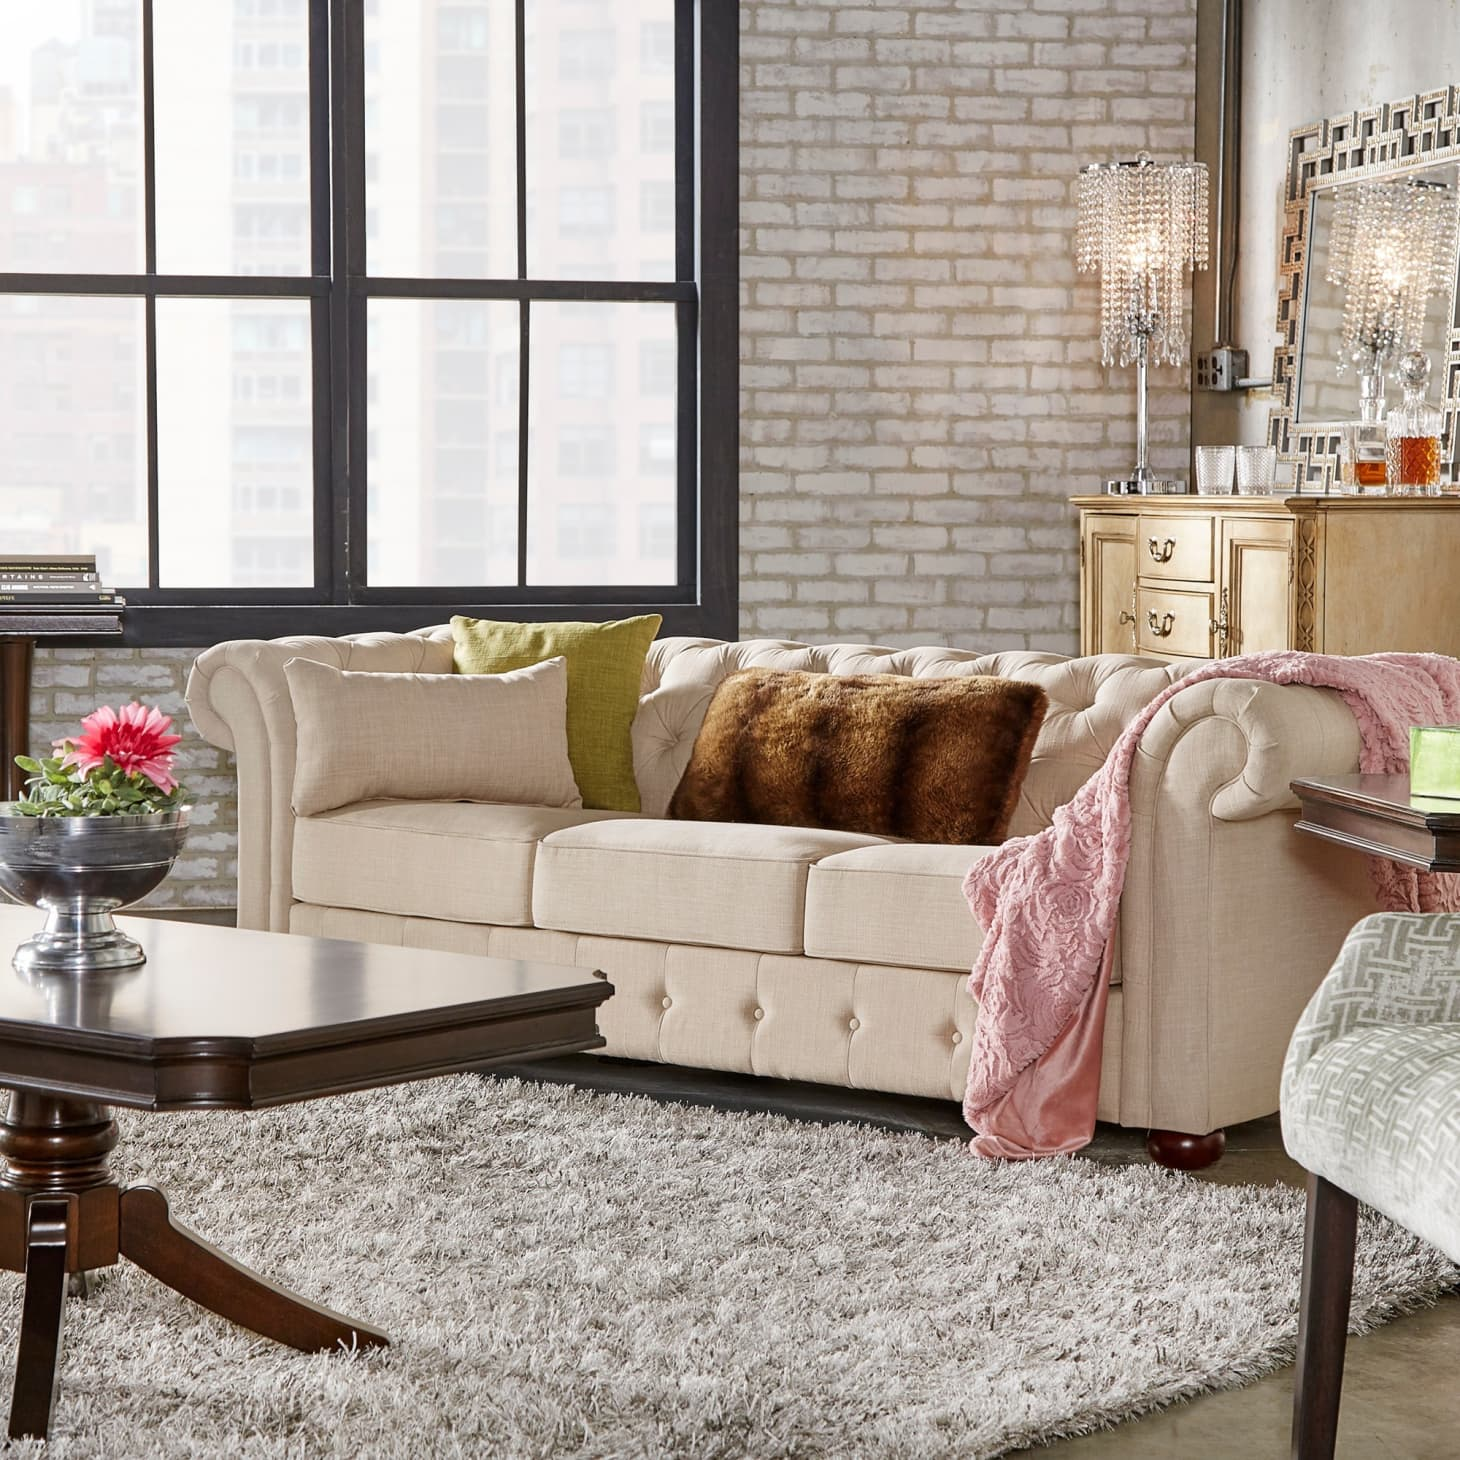 Tremendous Style Classic 12 Charming Chesterfield Sofas For Every Uwap Interior Chair Design Uwaporg